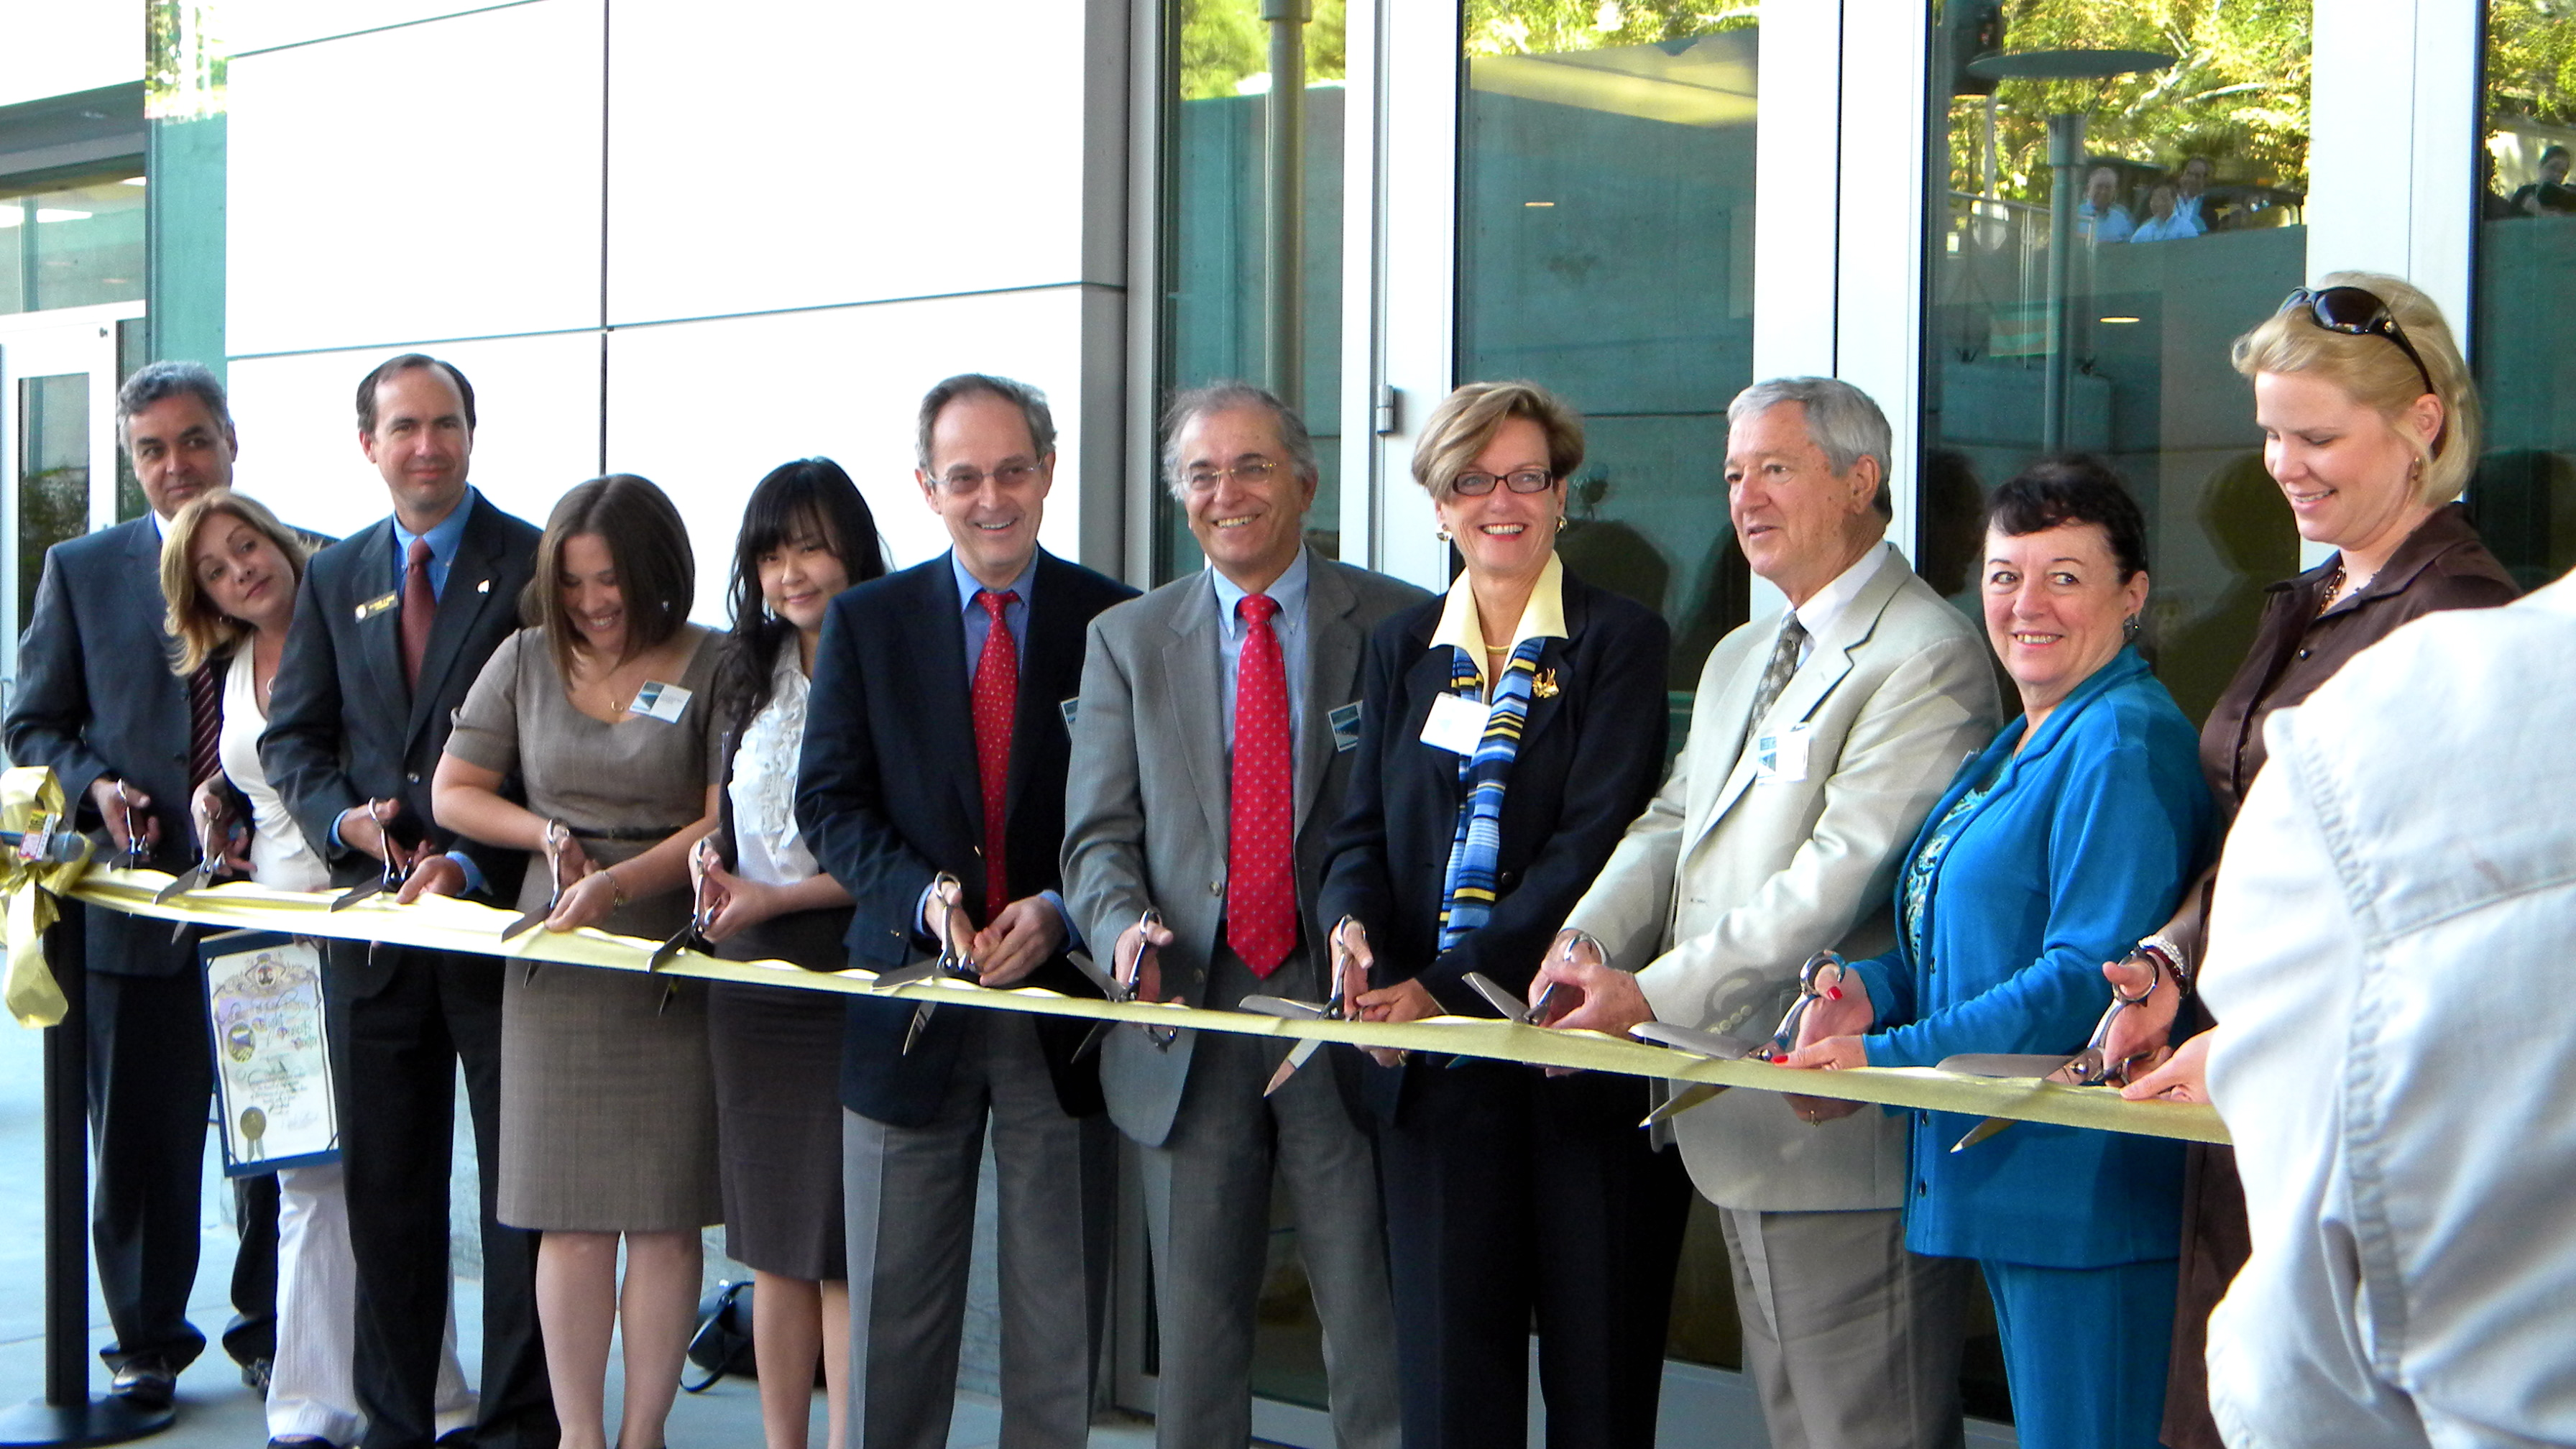 JPL Director Charles Elachi and other dignitaries cut the ribbon for JPL's new, environmentally friendly Flight Projects Center, which is NASA's greenest building to date